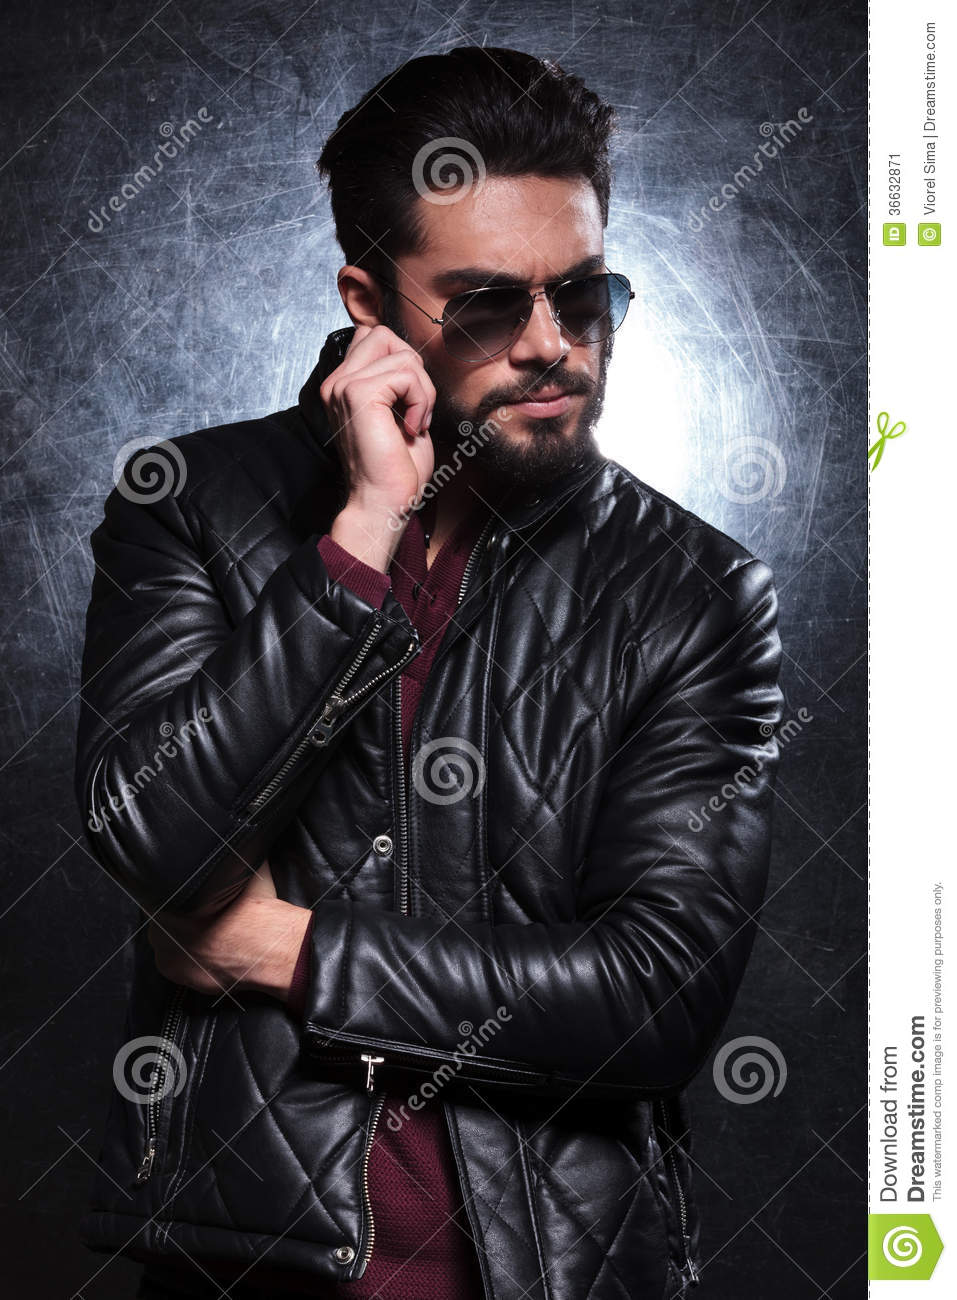 Fashion Man In Leather Jacket And Sunglasses Pulling His